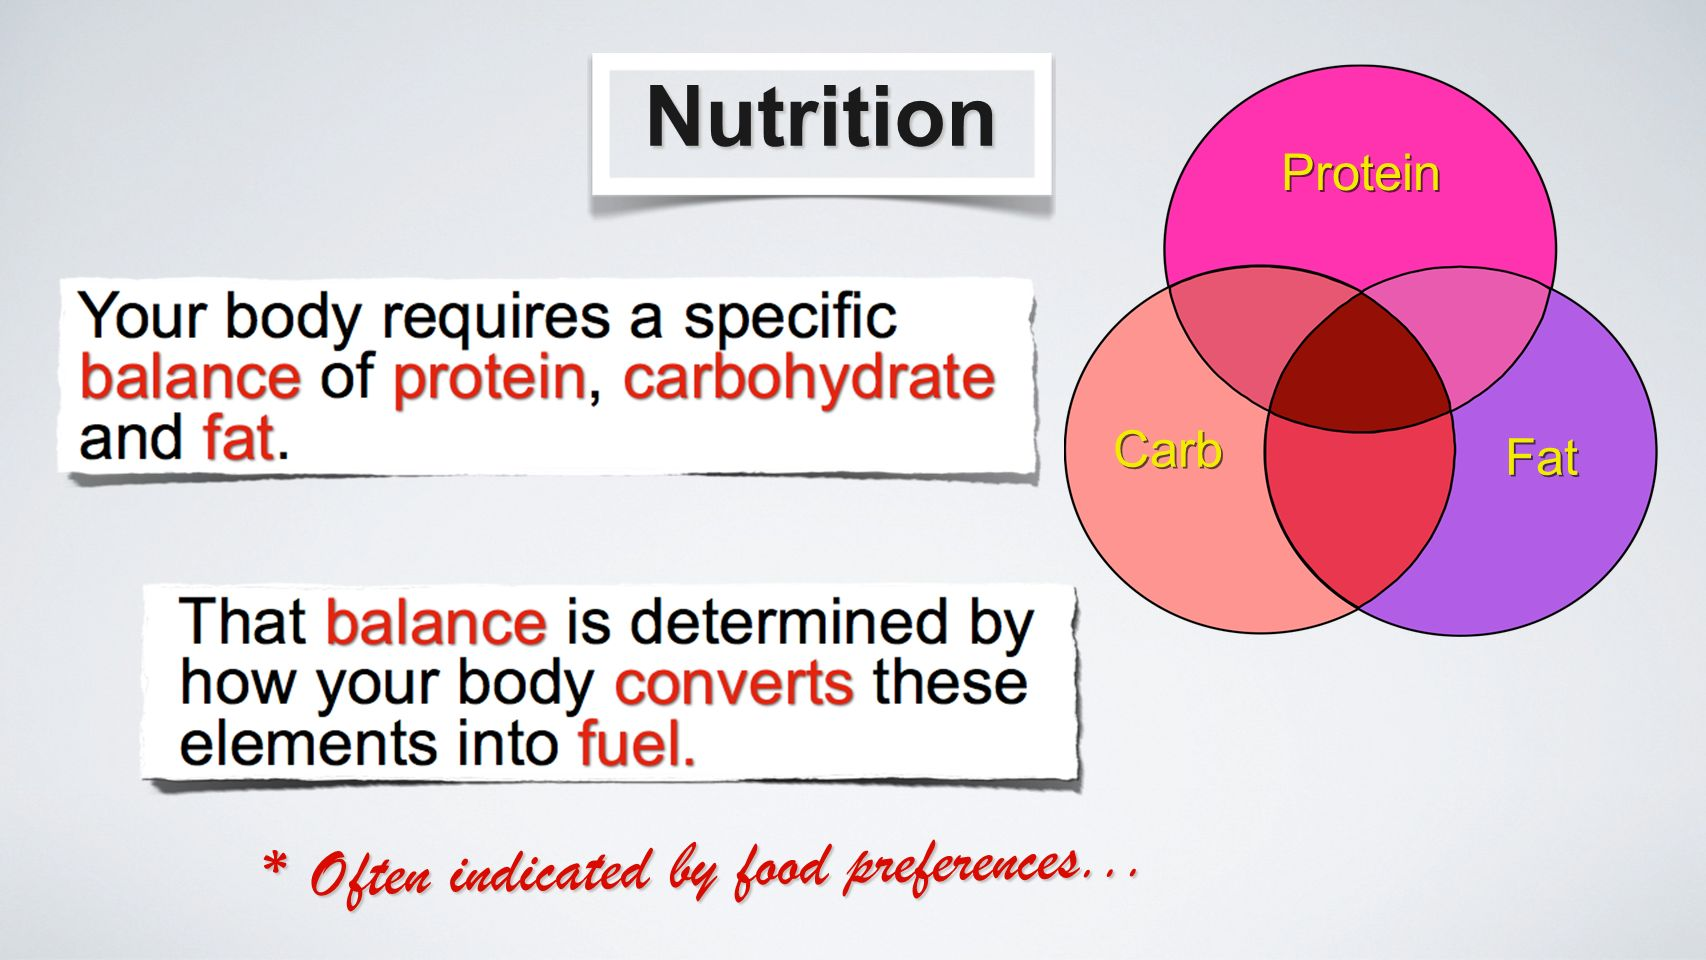 Nutrition Protein Carb Fat * Often indicated by food preferences...